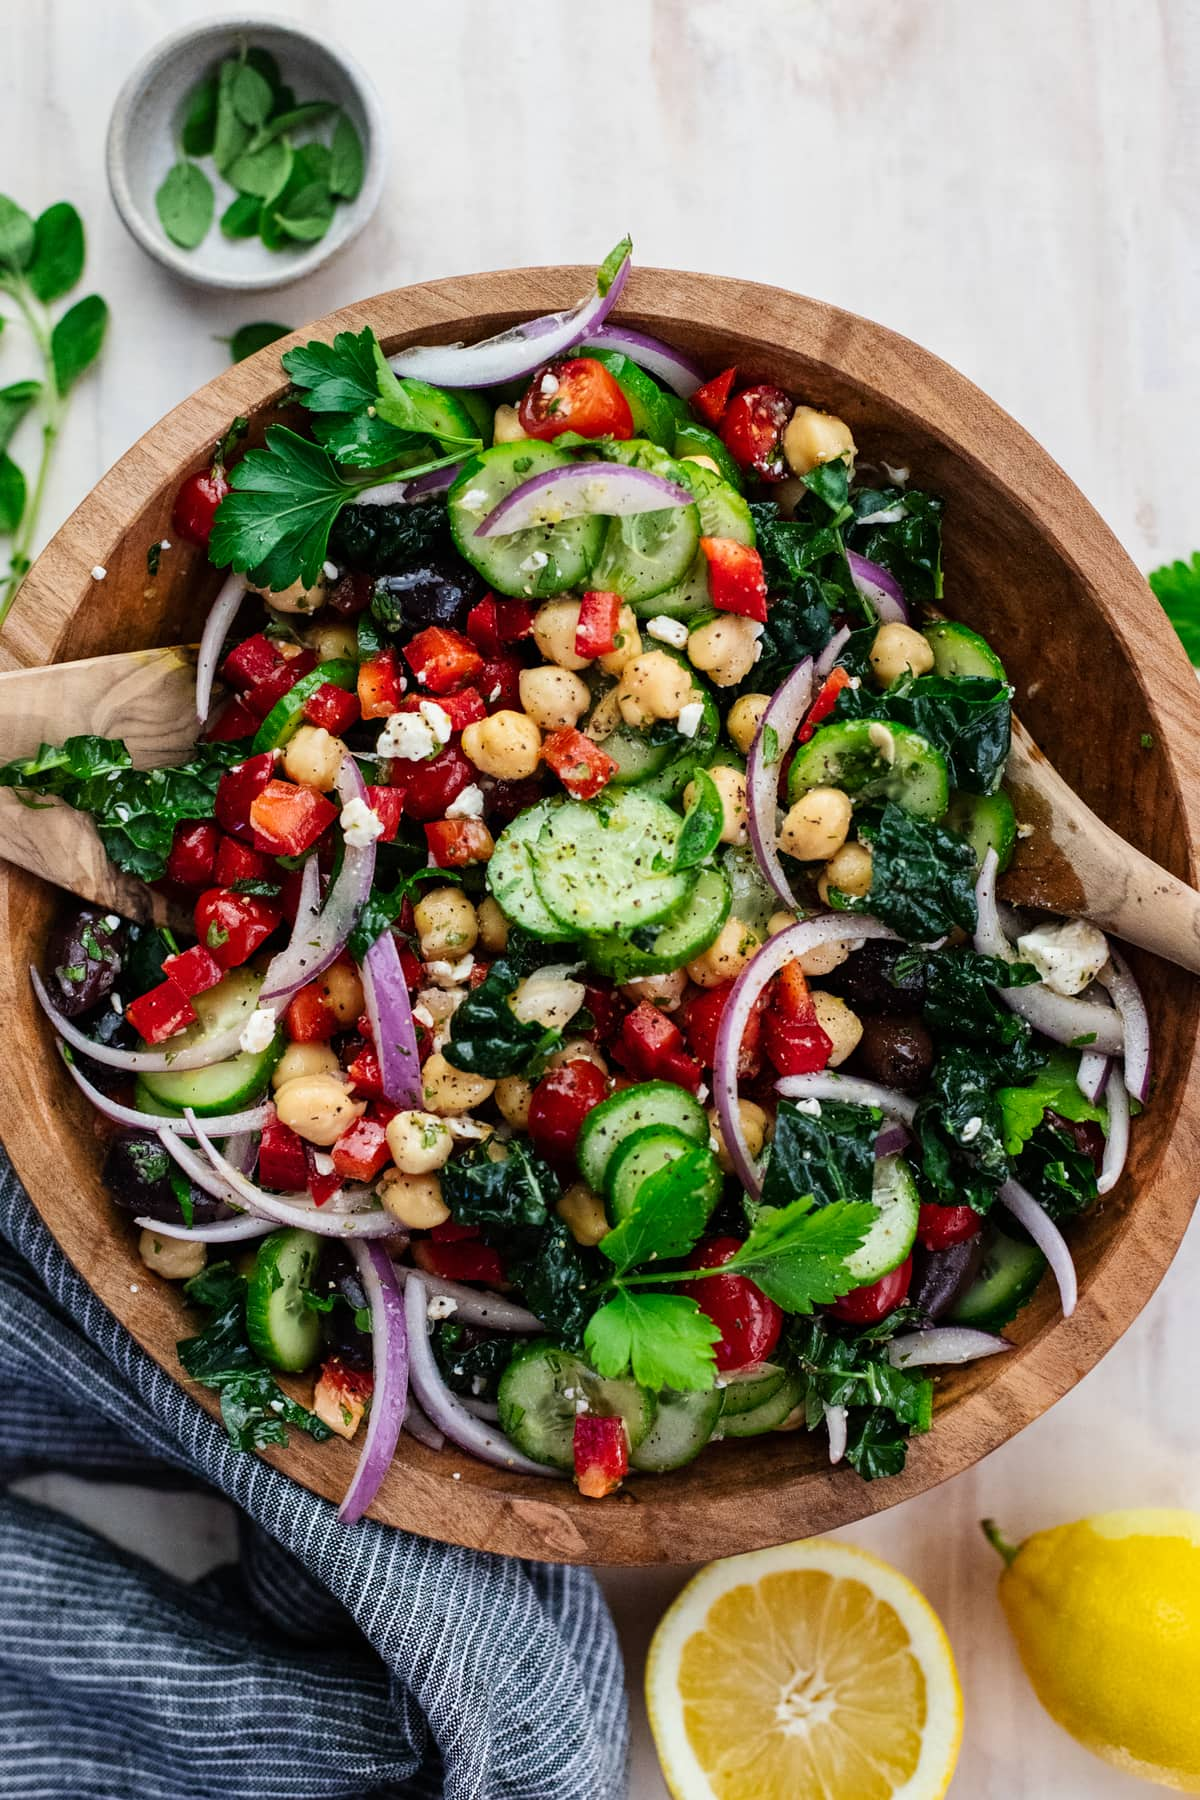 wooden bowl with chopped vegetables in a salad with wooden spoons on a light background with lemons and fresh herbs arranged around it.